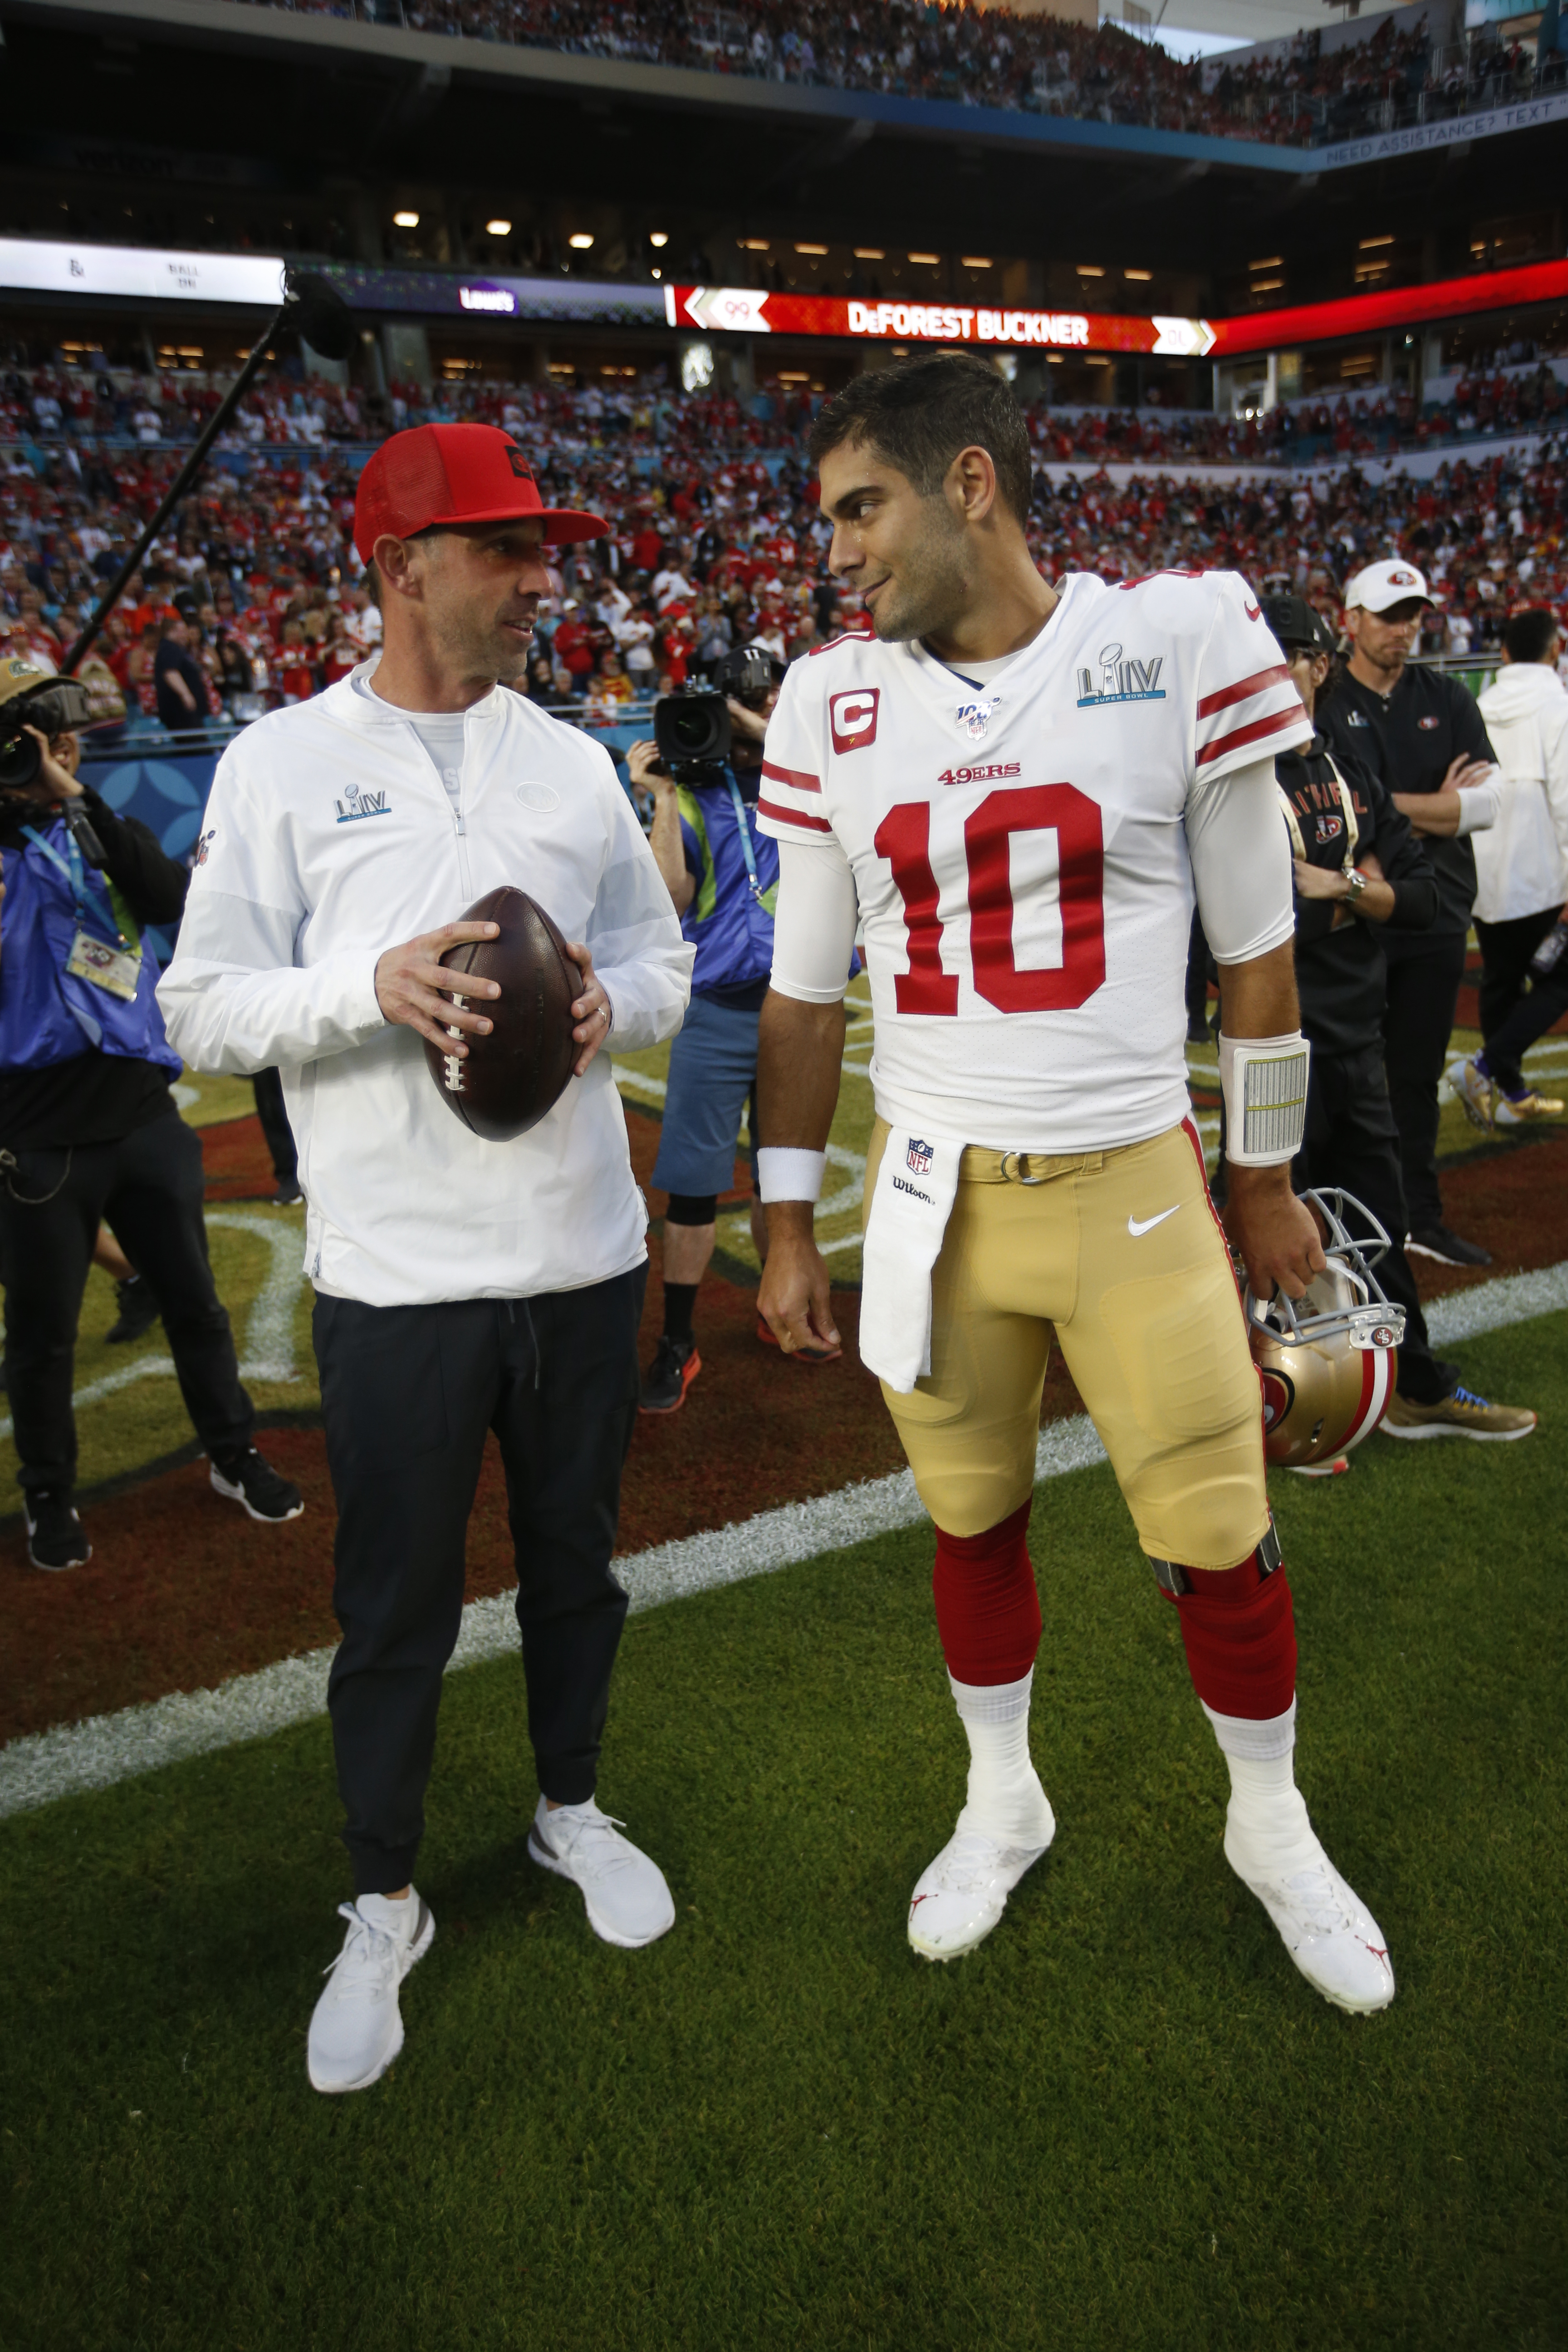 Head Coach Kyle Shanahan and Jimmy Garoppolo #10 of the San Francisco 49ers talk on the field before the game against the Kansas City Chiefs in Super Bowl LIV at Hard Rock Stadium on February 2, 2020 in Miami, Florida.